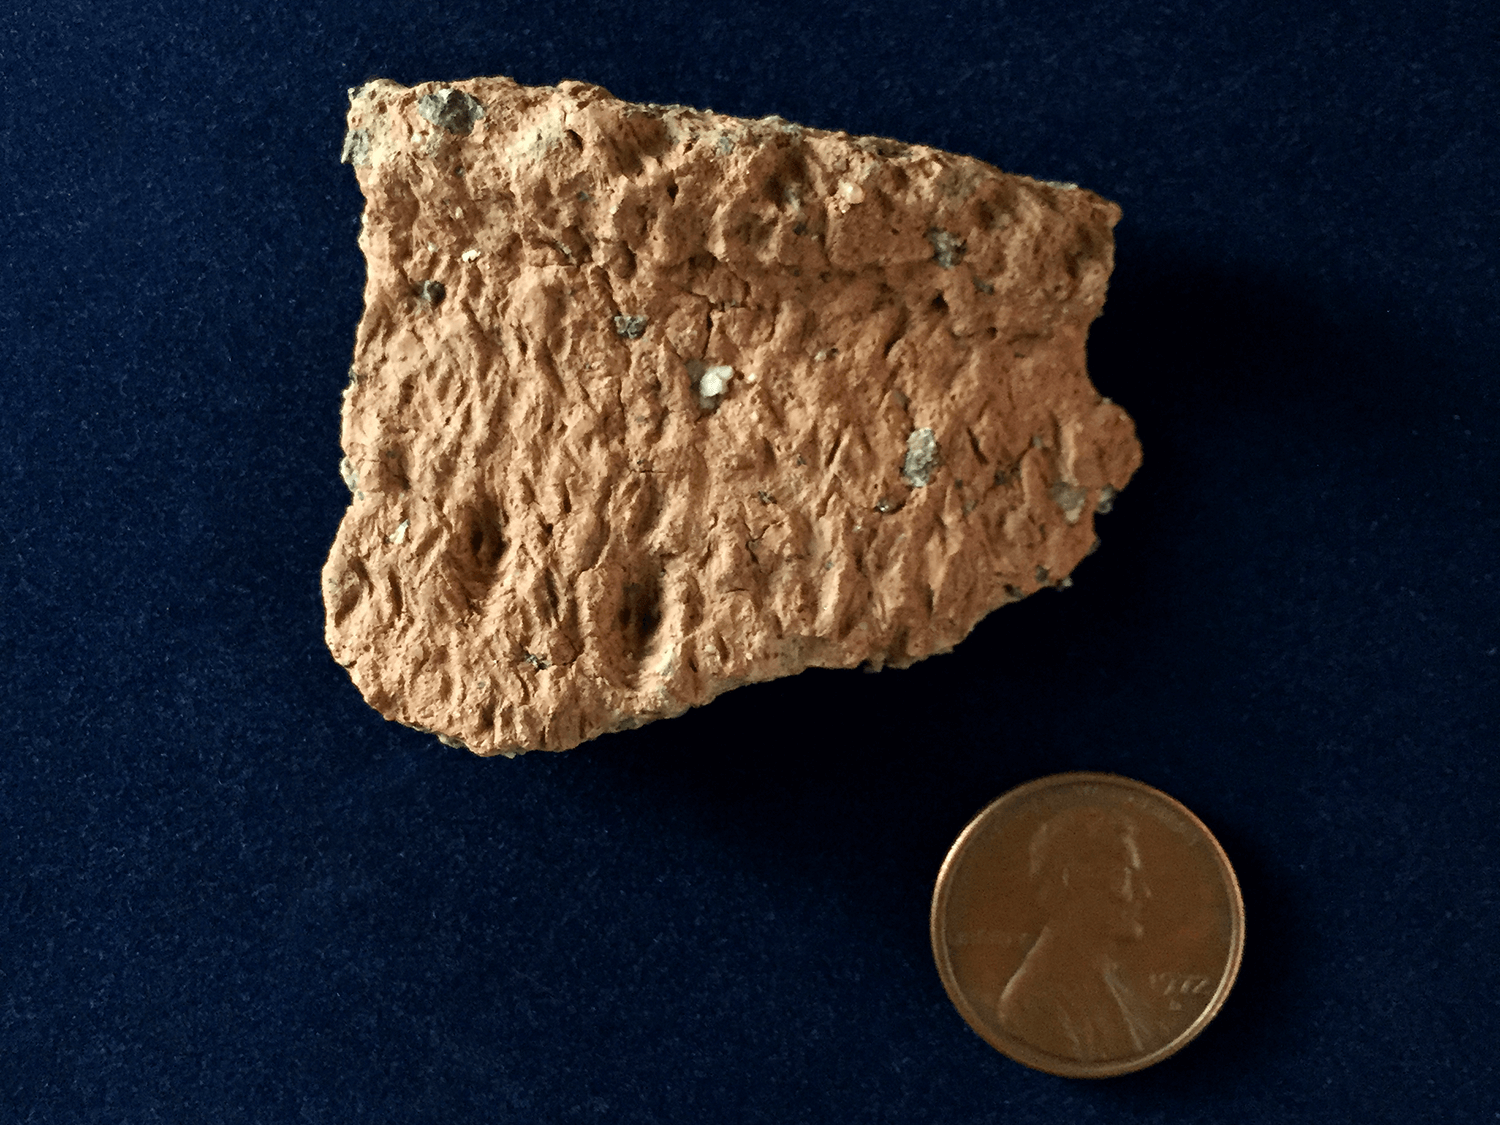 This Anishinaabek pottery sherd was found on Sleeping Bear Point.